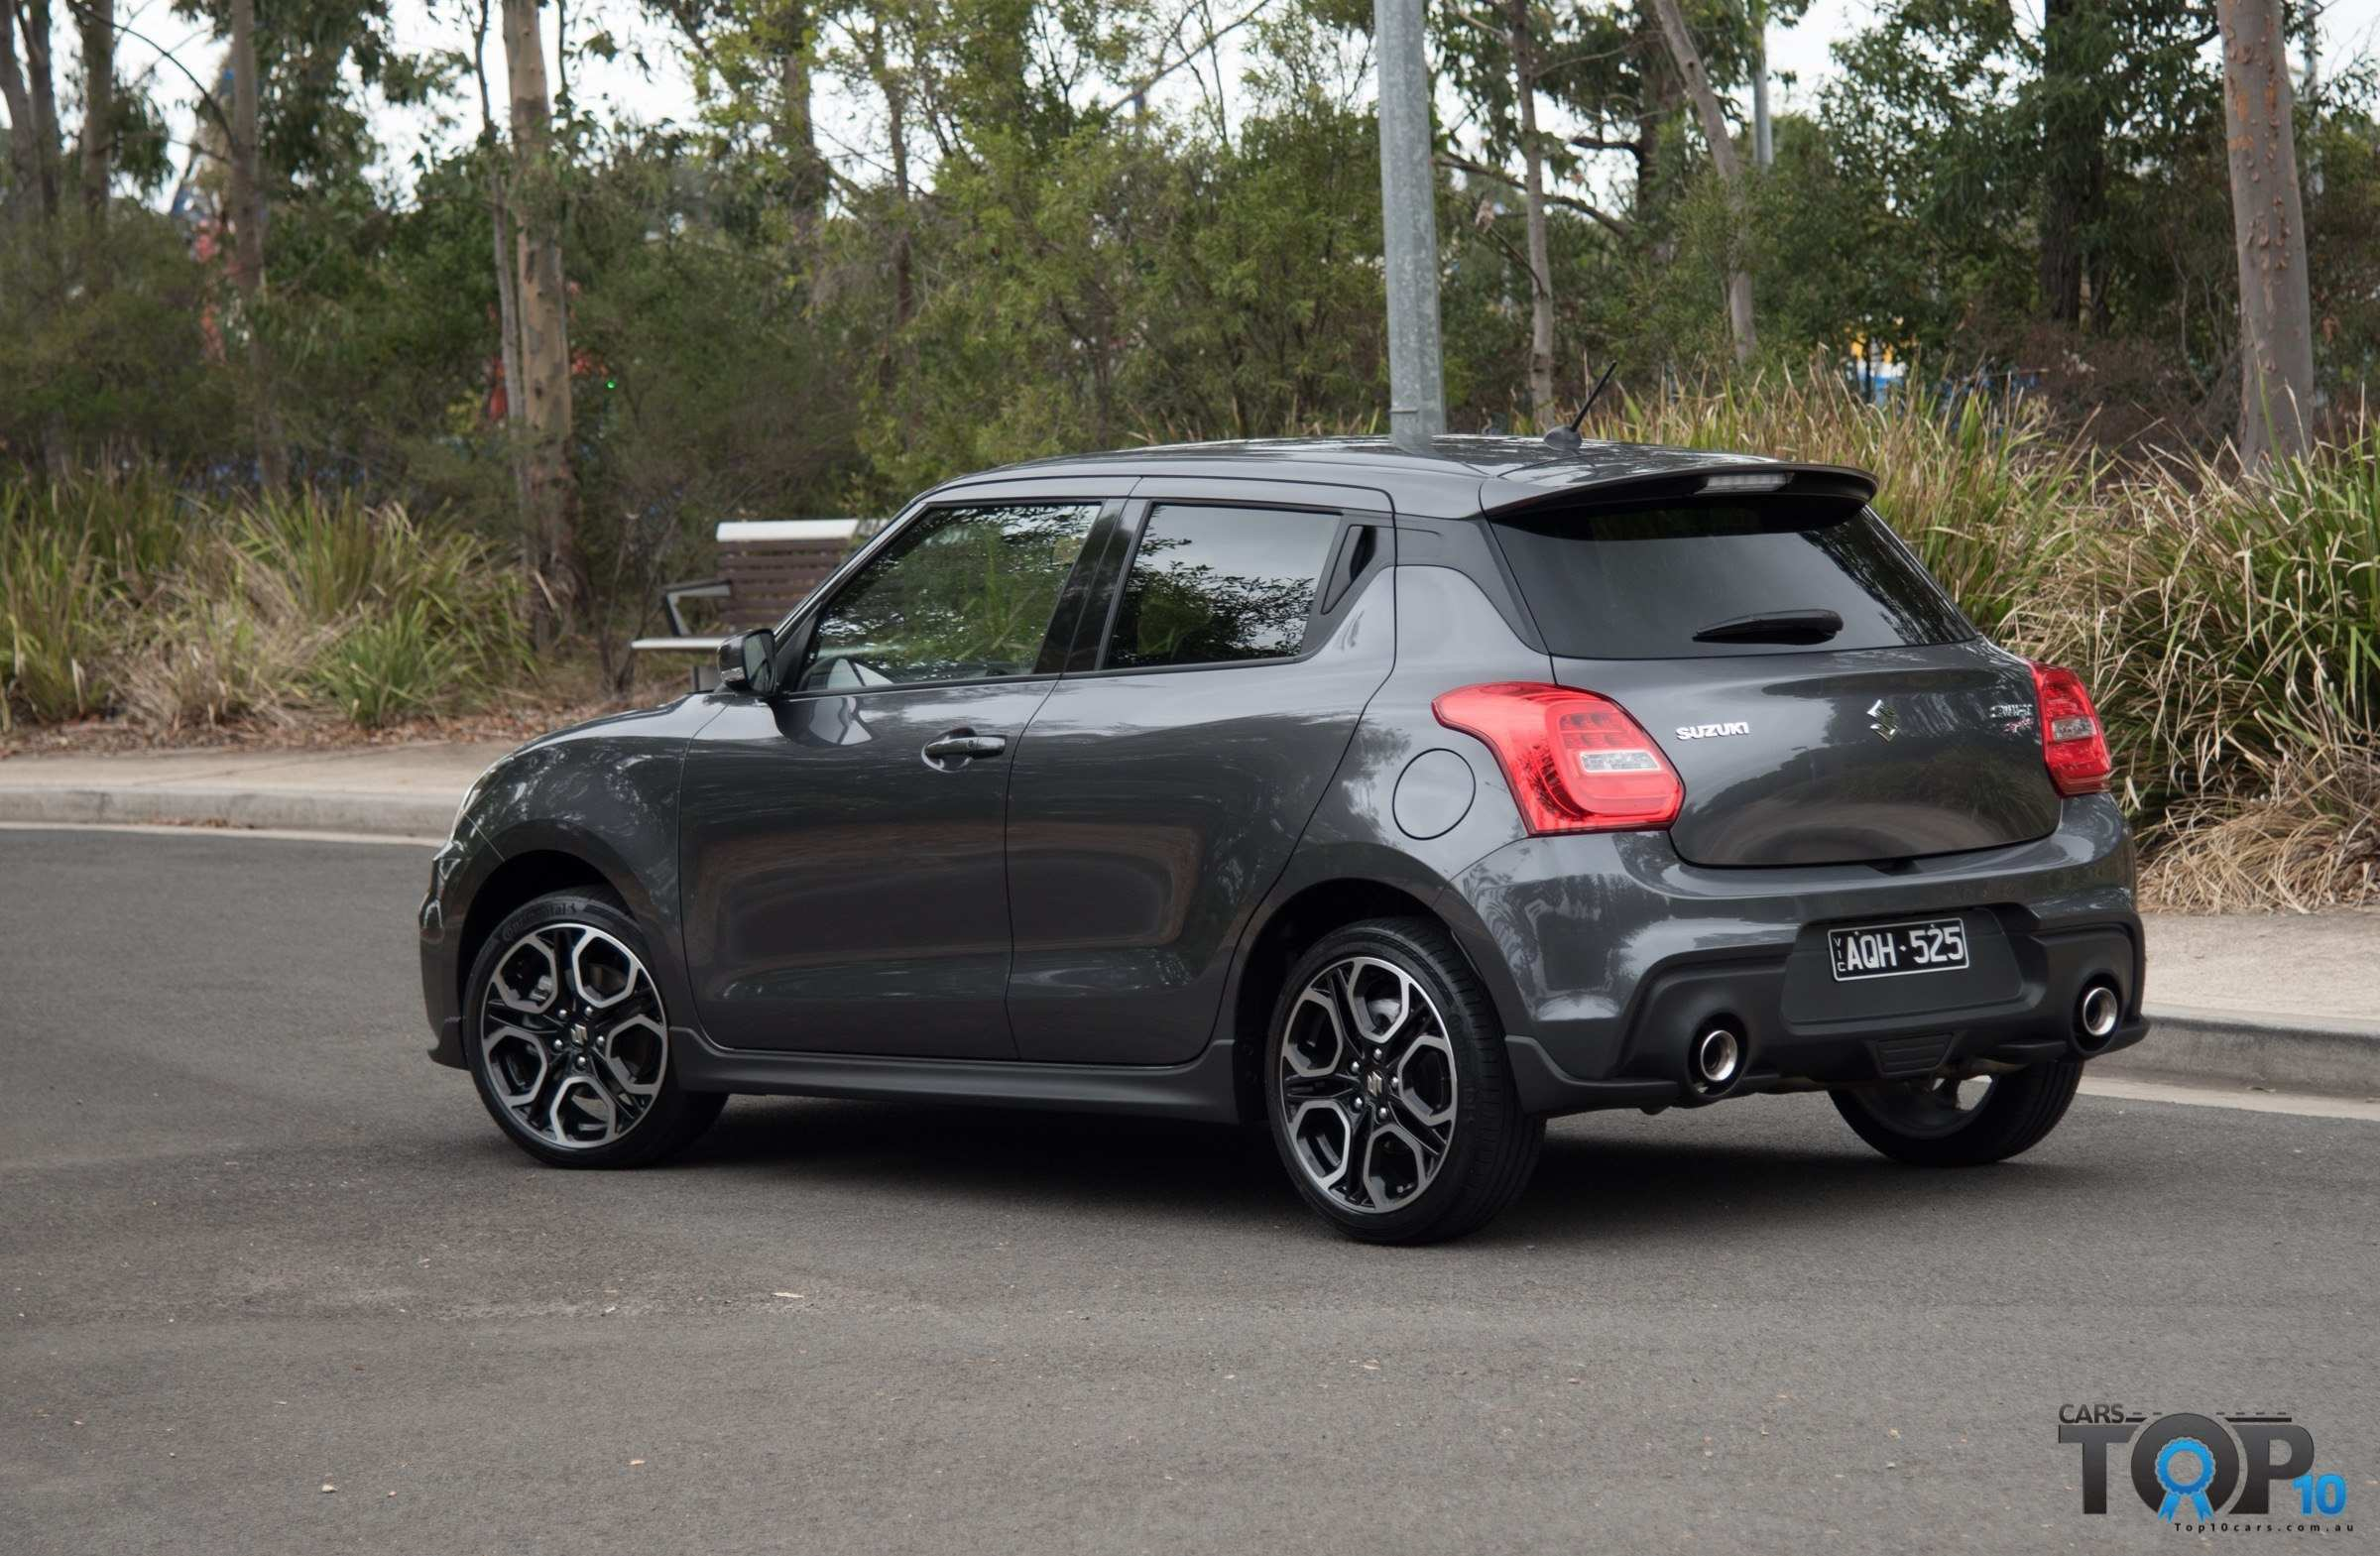 55 New 2020 Suzuki Swift Picture